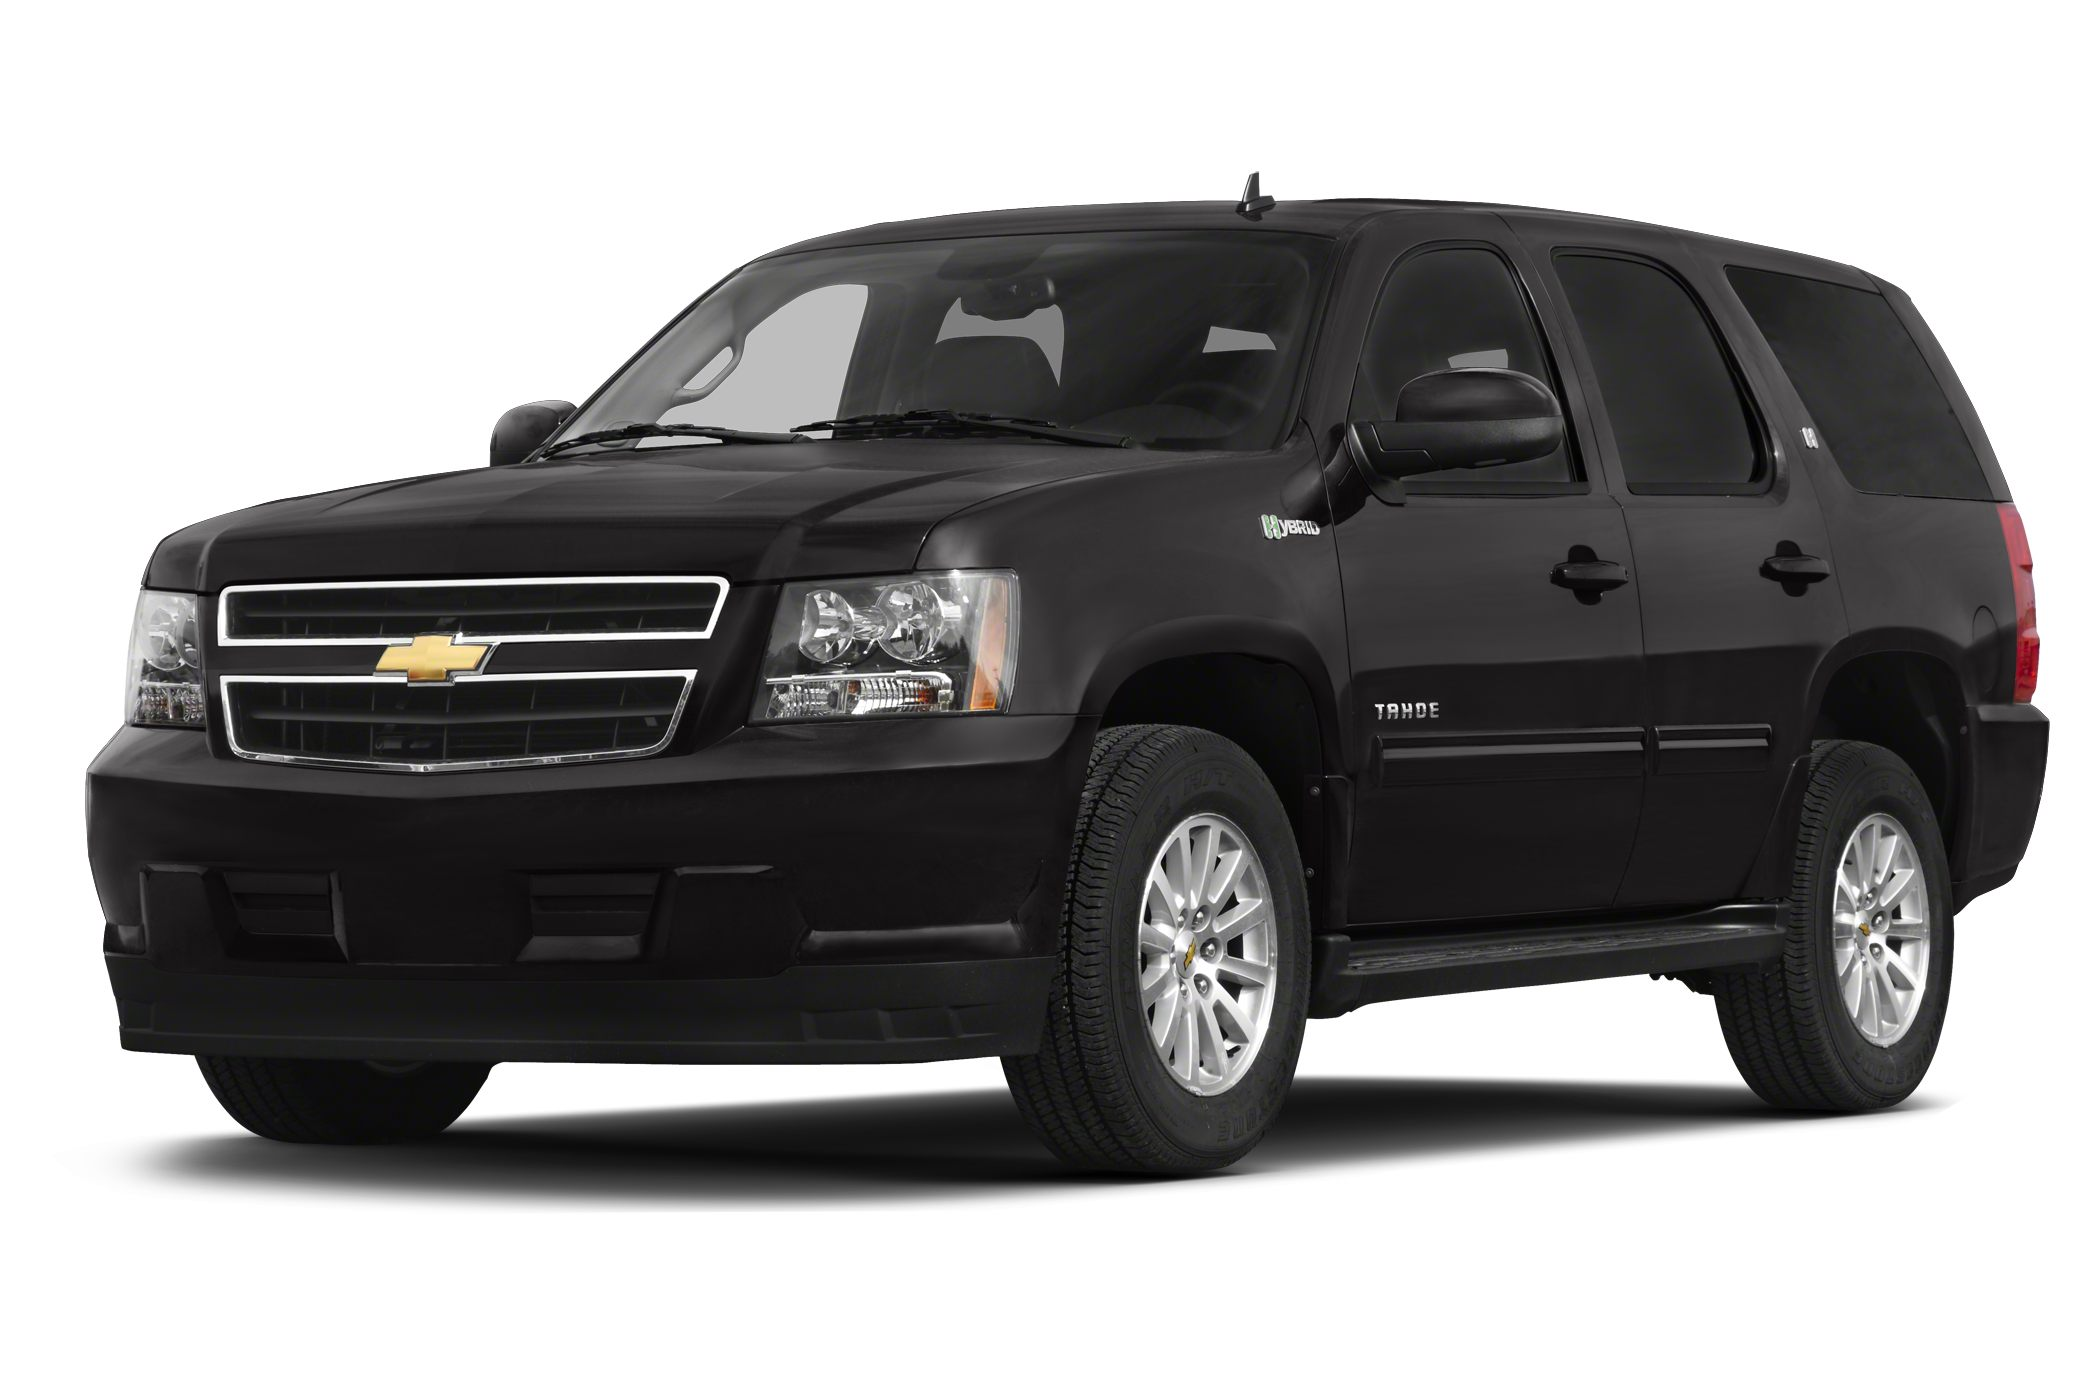 chevrolet tahoe hybrid news photos and buying information autoblog. Black Bedroom Furniture Sets. Home Design Ideas